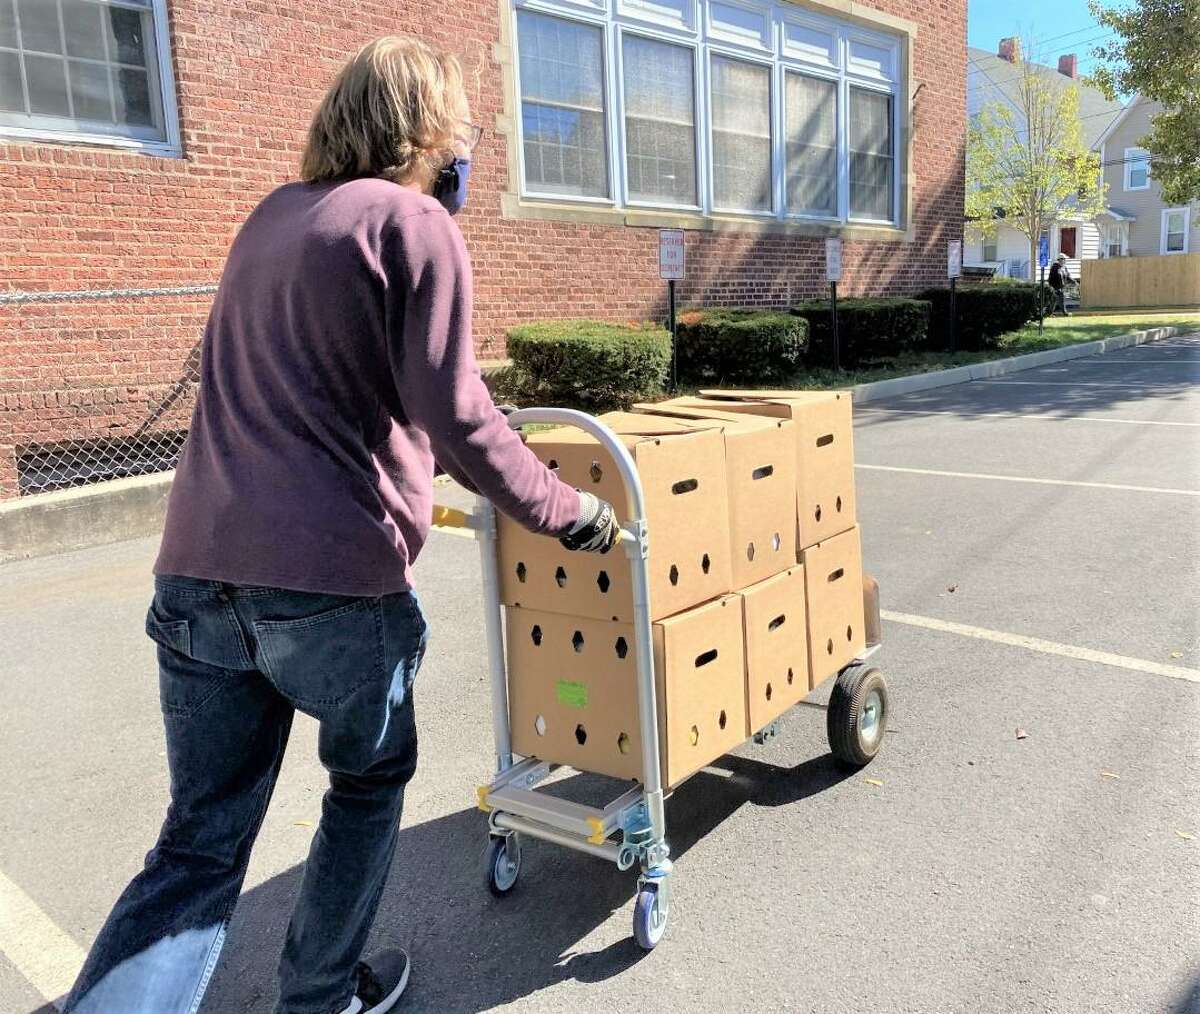 Volunteers converged on Macdonough Elementary School in Middletown Thursday to distribute hundreds of boxes of fresh food, courtesy of the USDA Farmers to Families program.